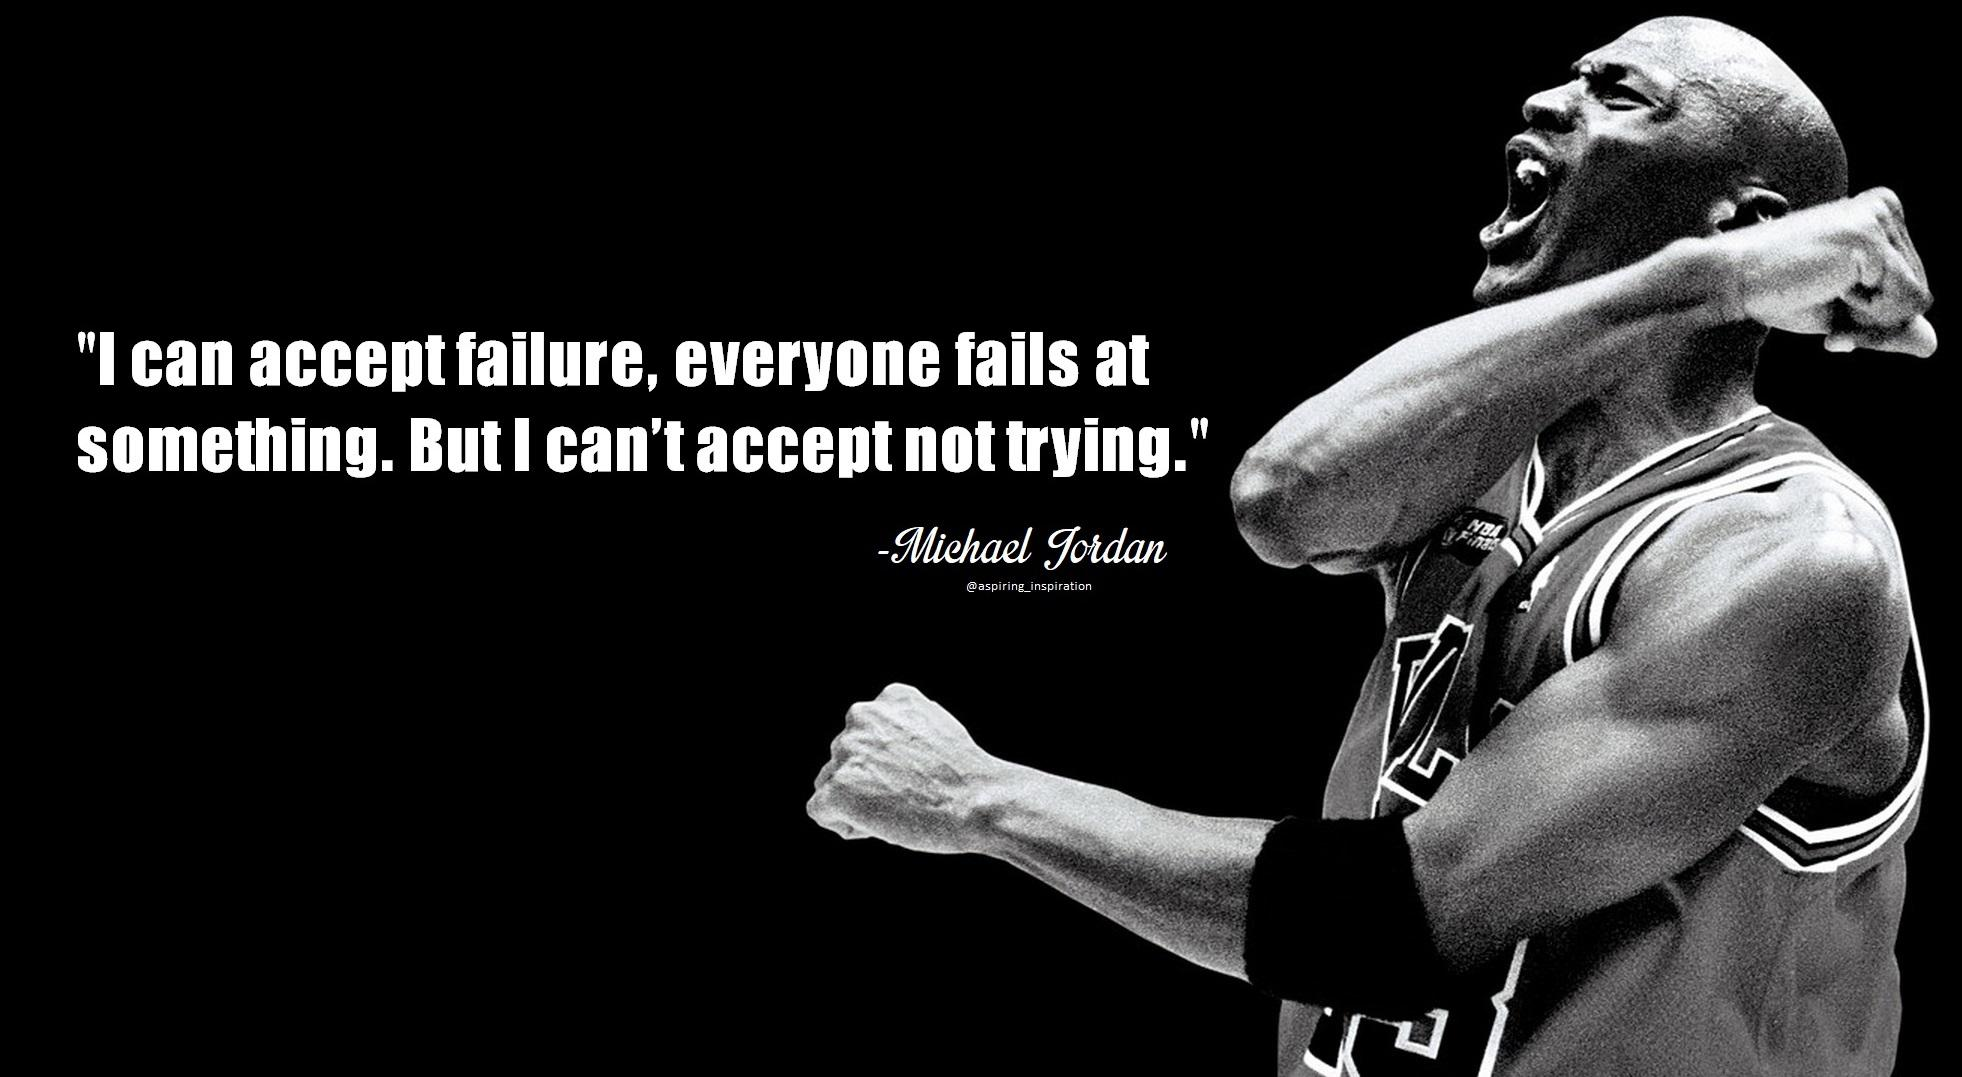 I can accept failure, everyone fails at something.  But I can't accept not trying. – Michael Jordan